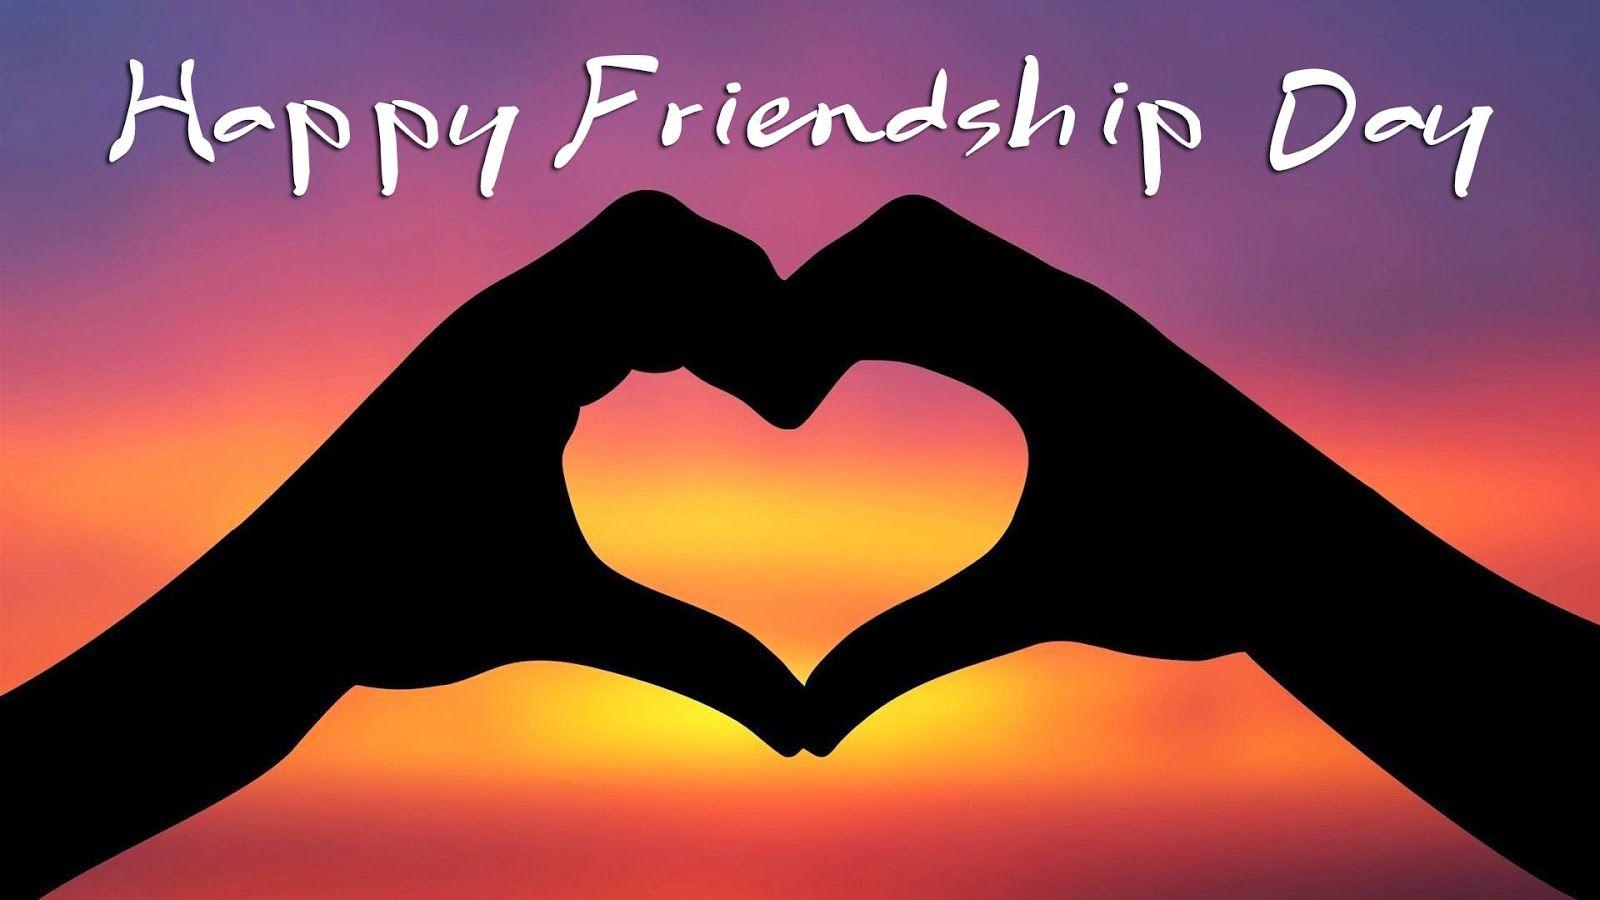 Happy Friendship Day 2016 Images HD 3d Wallpapers Free Download .